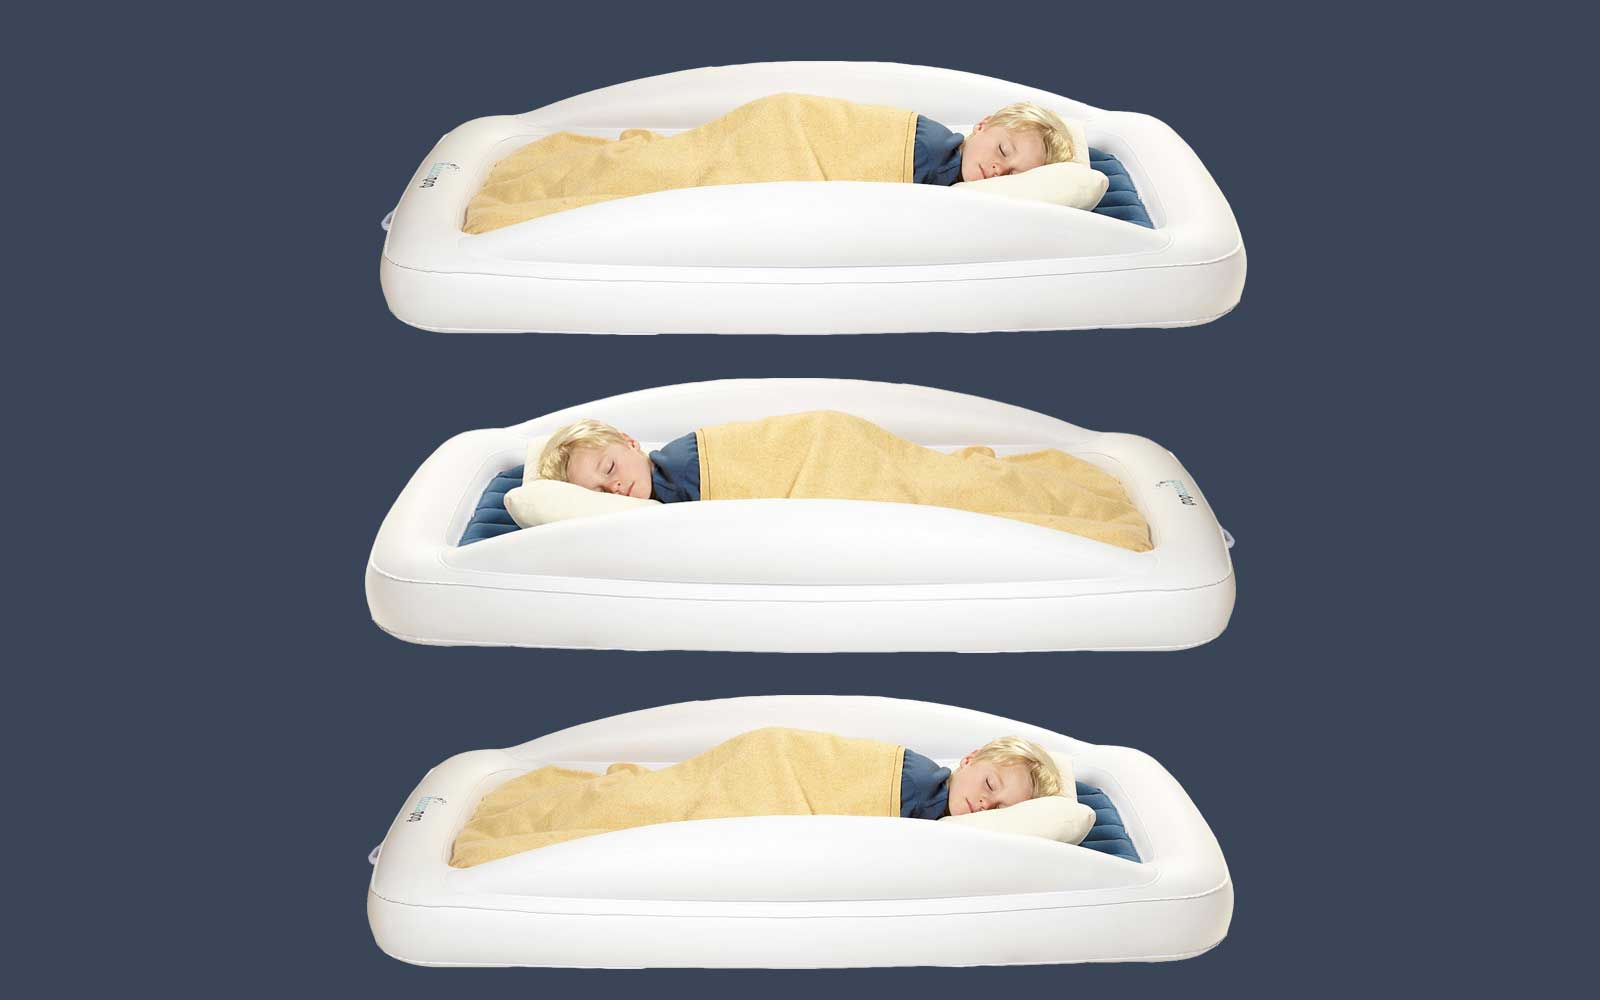 Compact Blow Up Mattress For Kids Is Necessary For Family Travel Travel Leisure